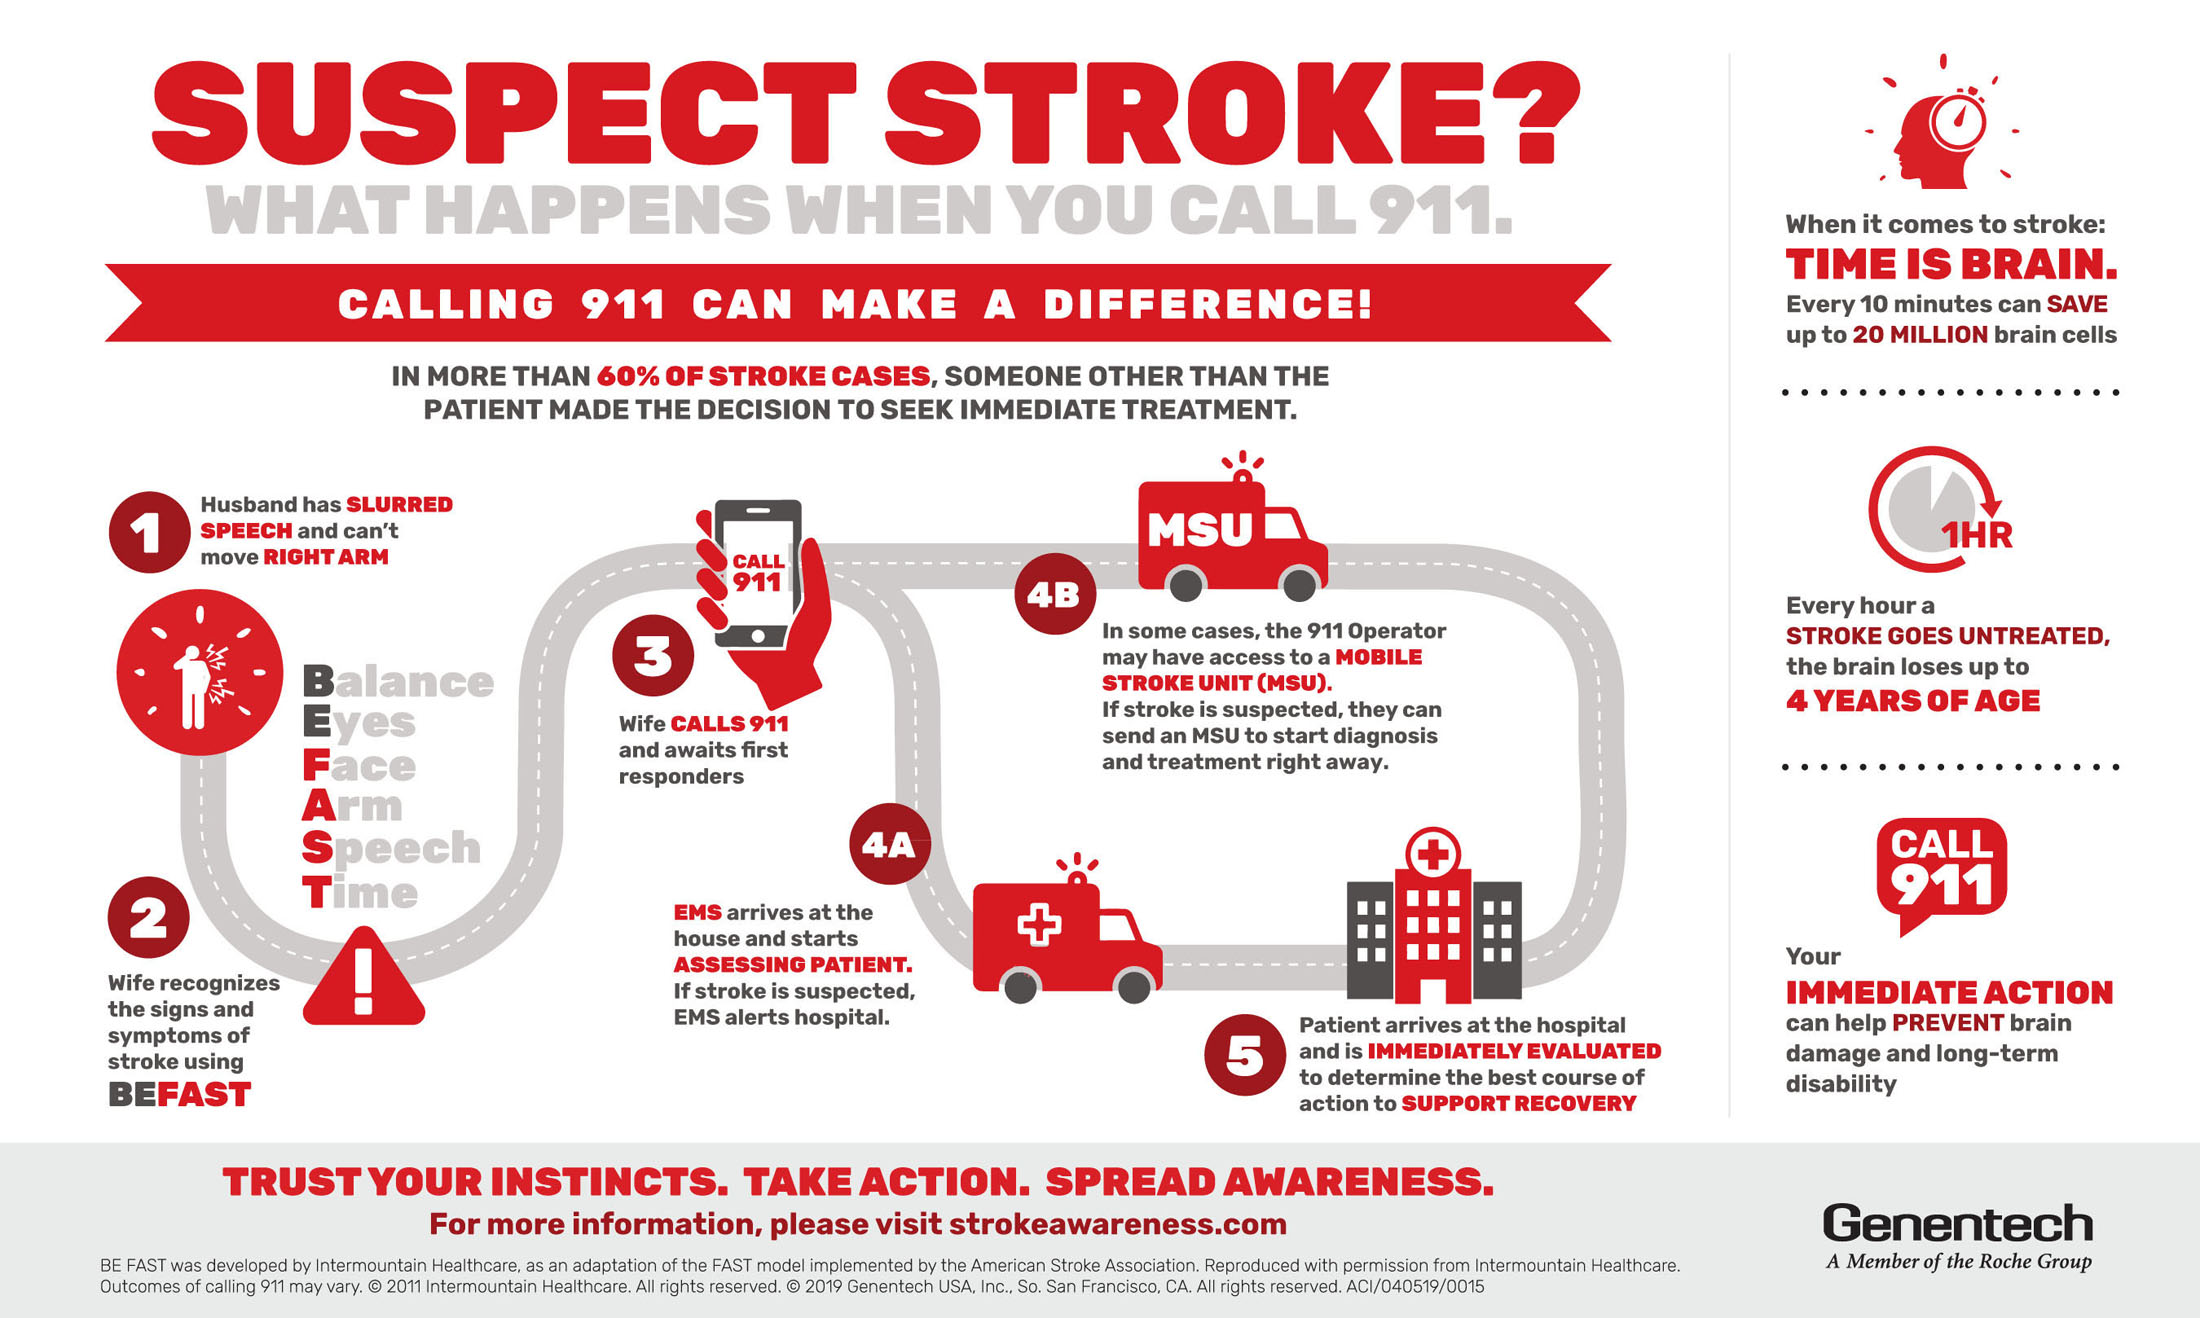 Suspect Stroke? Calling 911 Can Make a Difference